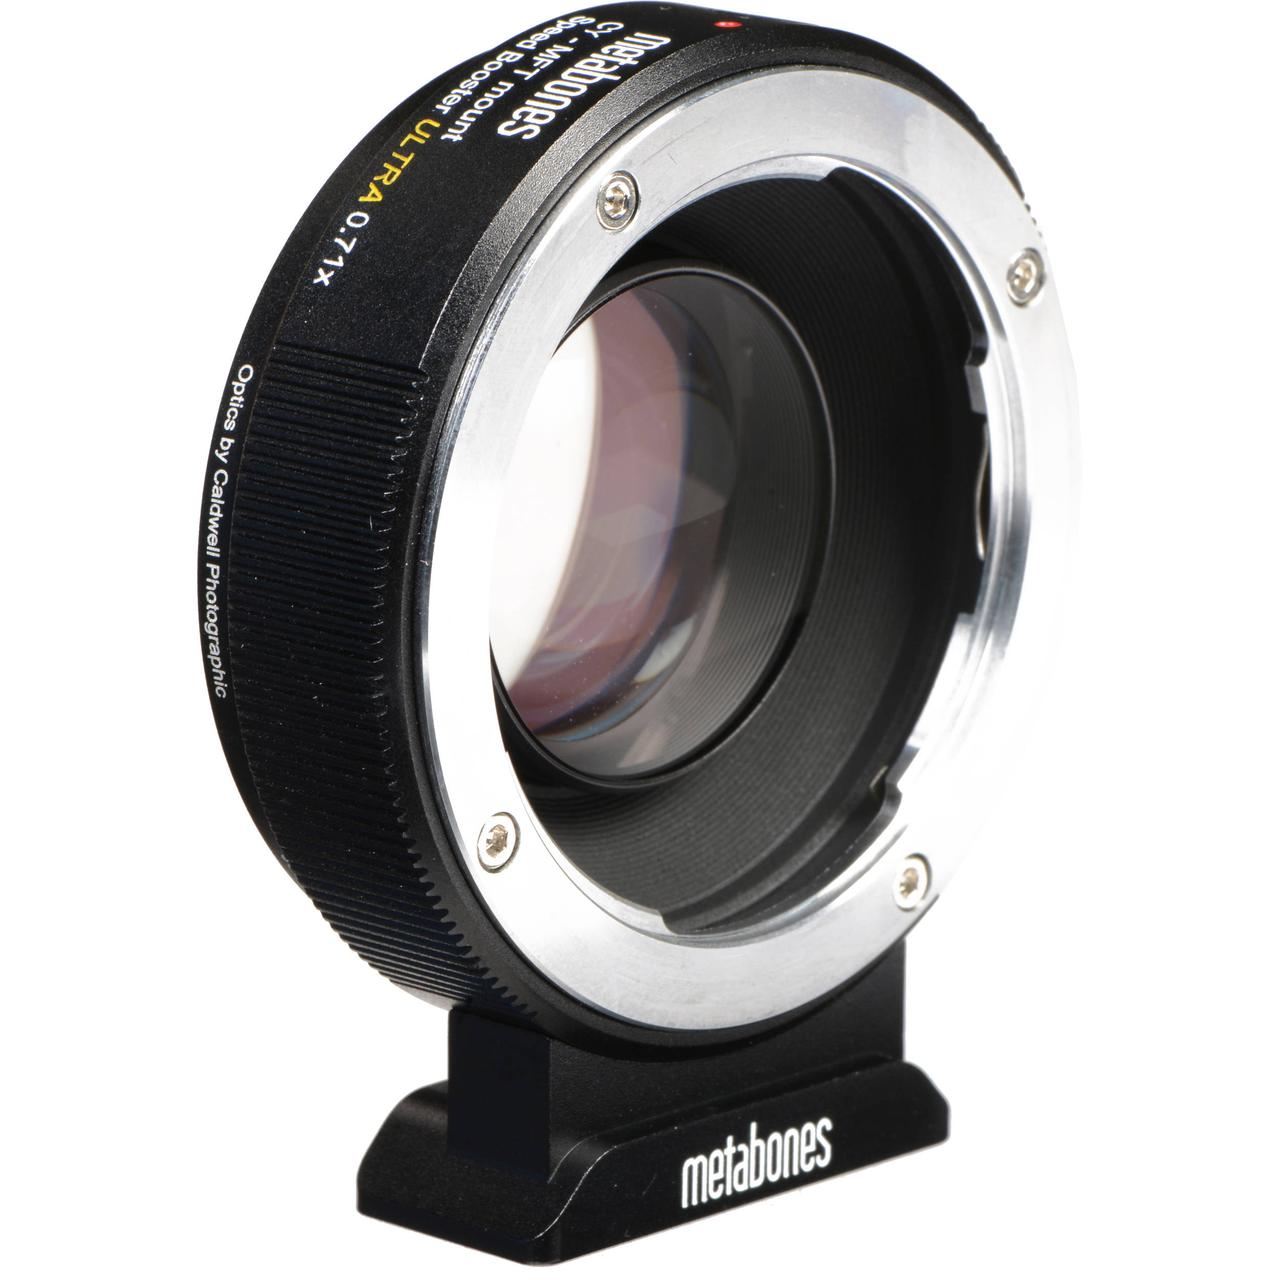 Metabones Ultra 0.71x Adapter for ContaxYashica-Mount Lens to Micro Four Thirds-Mount Camera (MB_SPCY-M43-BM3)